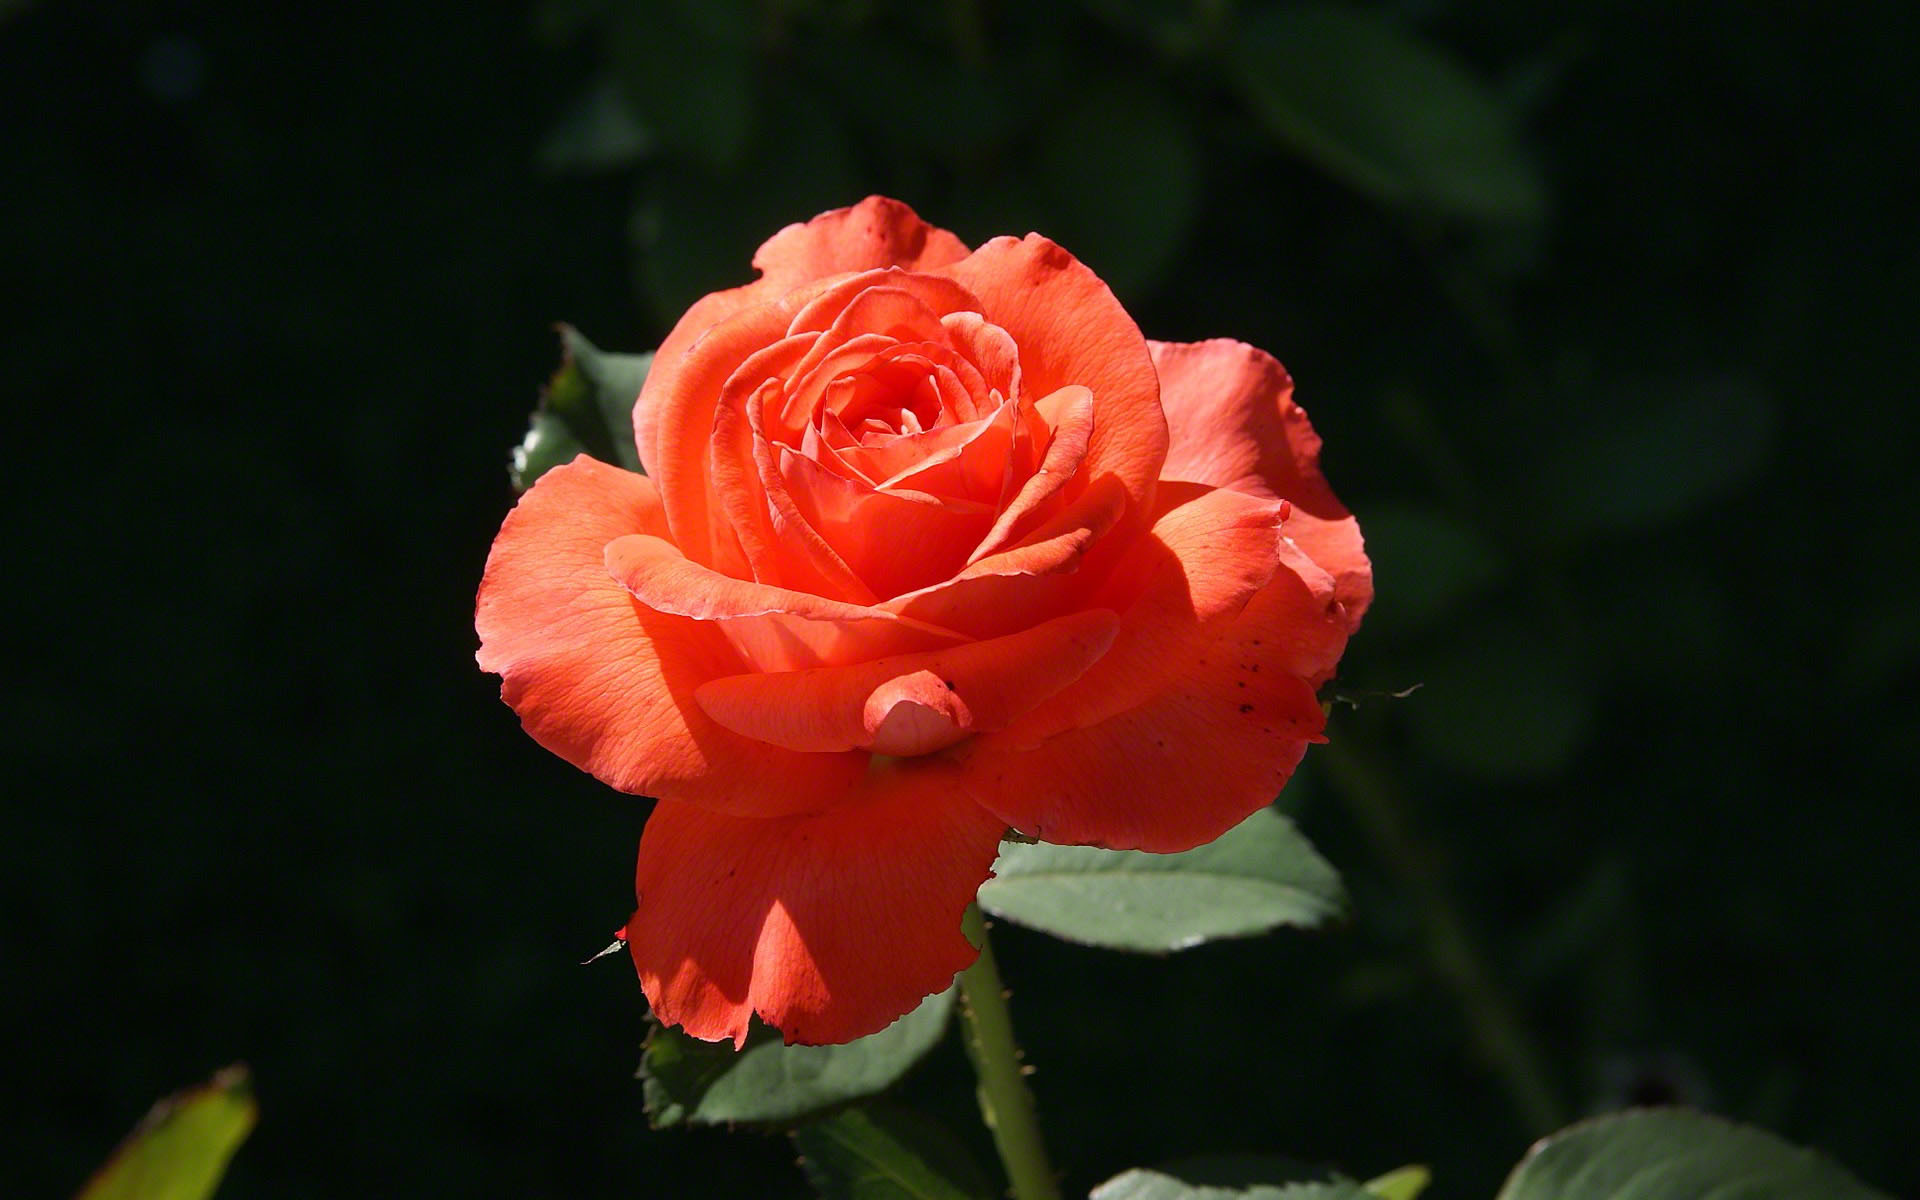 http://www.fabiovisentin.com/photography/photo/12/orange-rose-hd.jpg